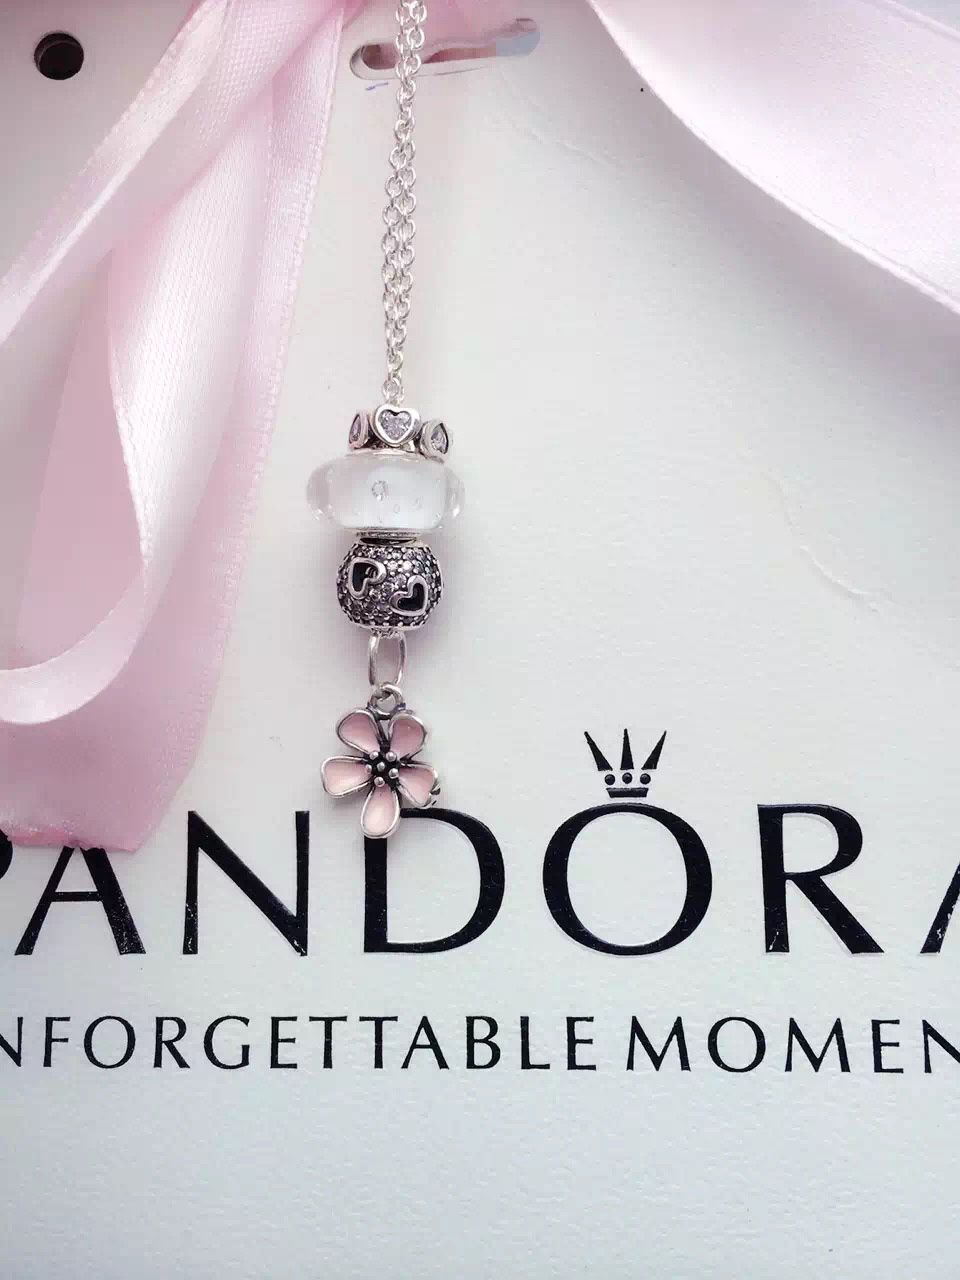 d44c1f1e6 50% OFF!!! Pandora Charm Necklace. Hot Sale!!! SKU: CN01014 ...